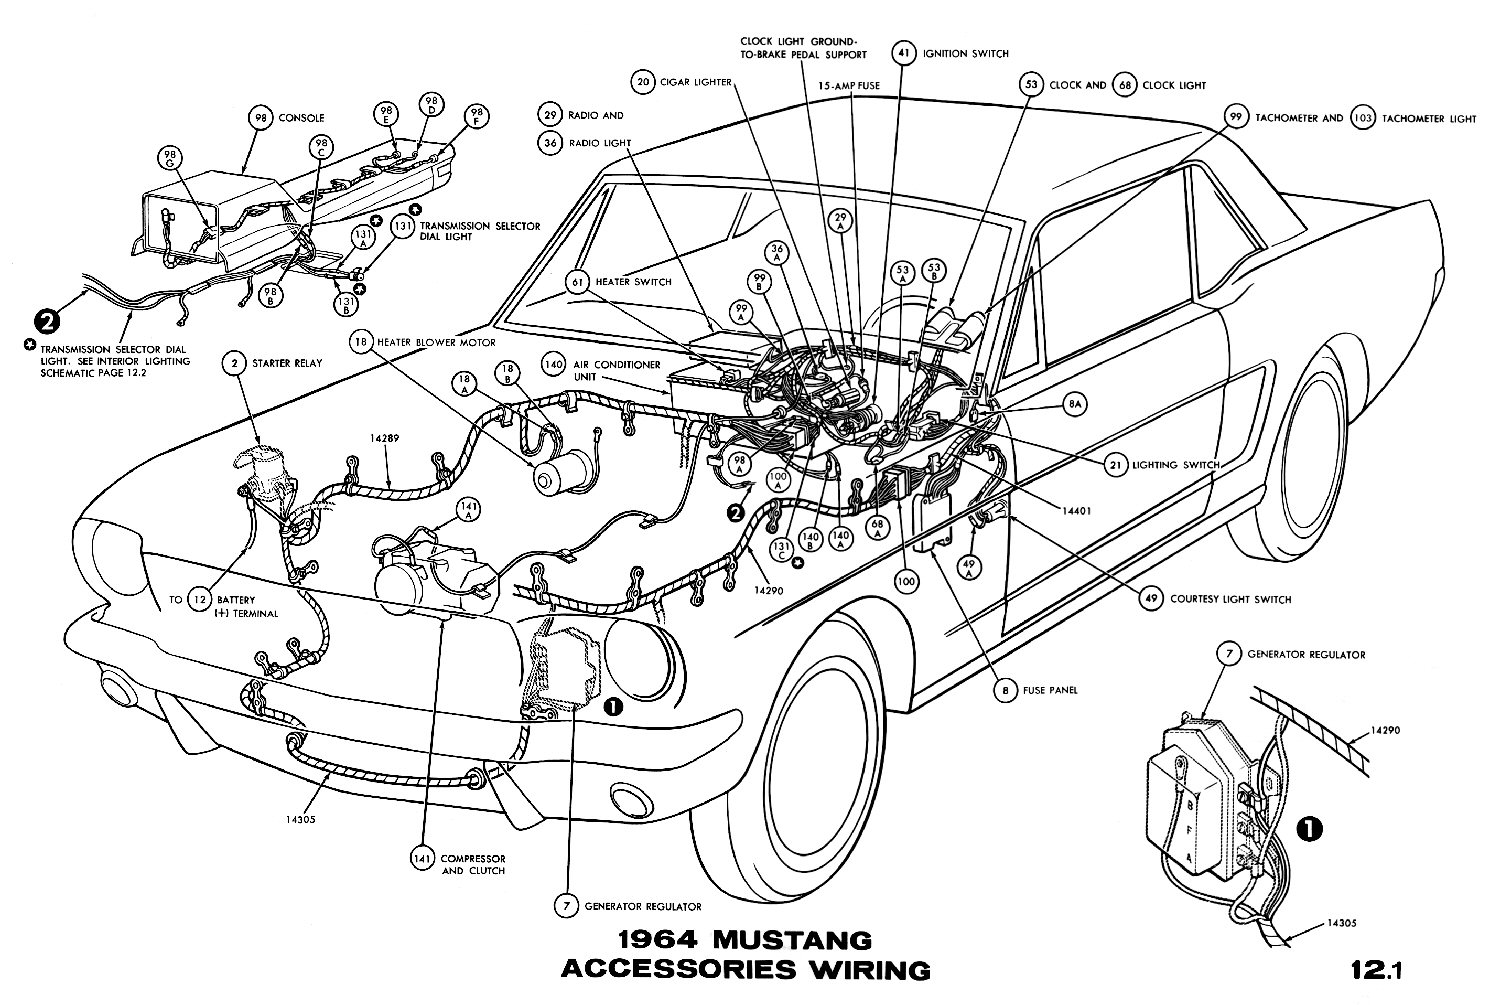 1965 Mustang Wiring Diagrams http://averagejoerestoration.com/resources/mustang-wiring-and-vacuum-diagrams/1964-mustang-wiring-diagrams/